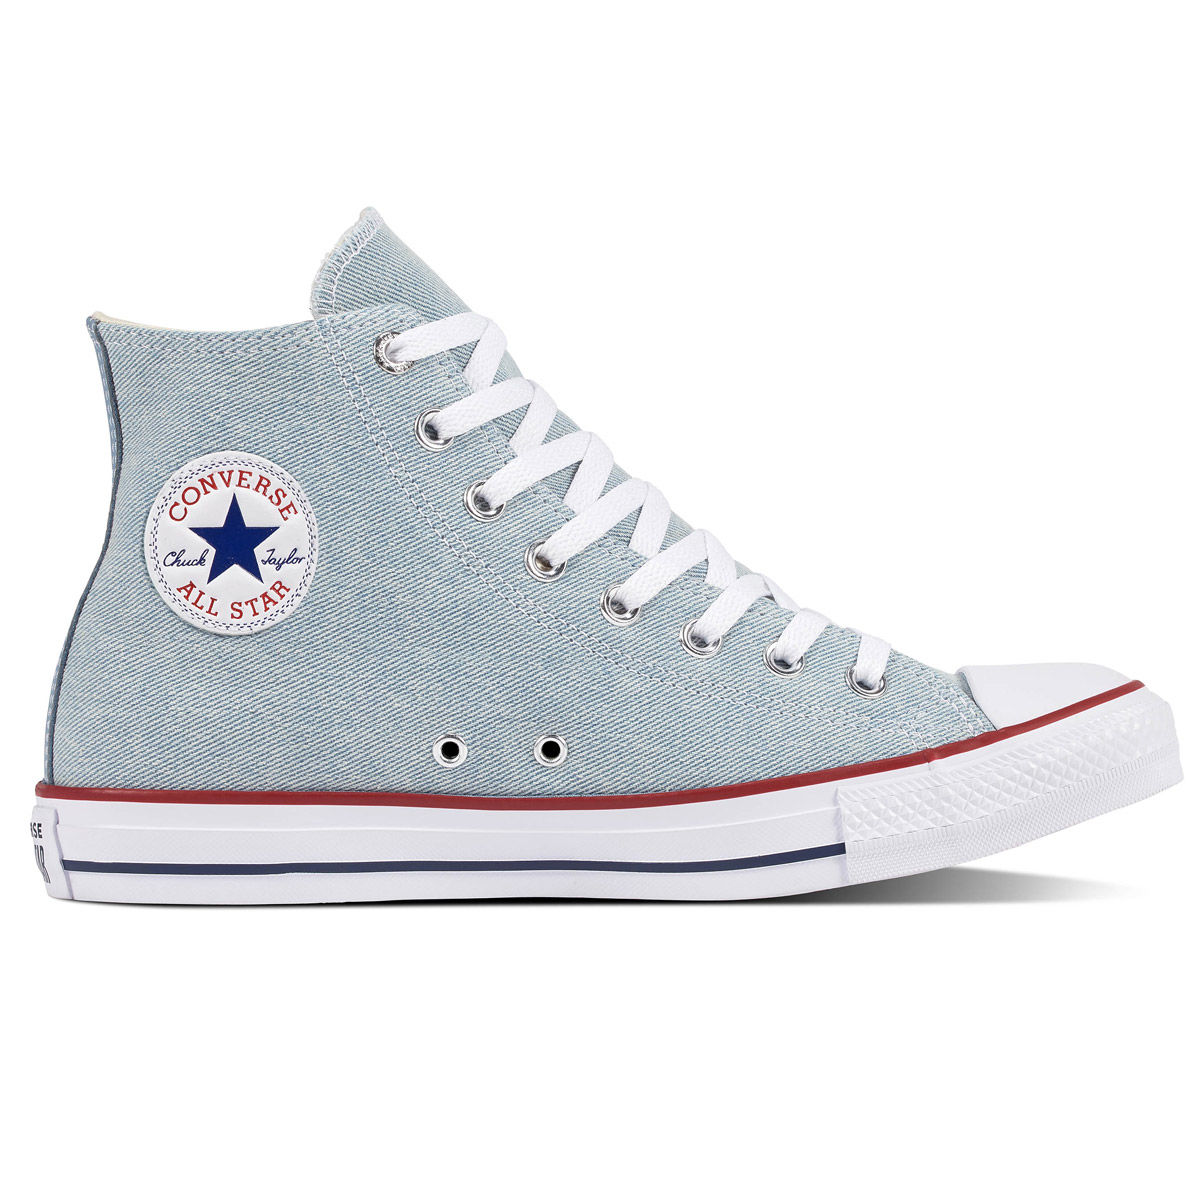 Converse Chuck Taylor All Star Worn In High Top Womens Casual Shoe